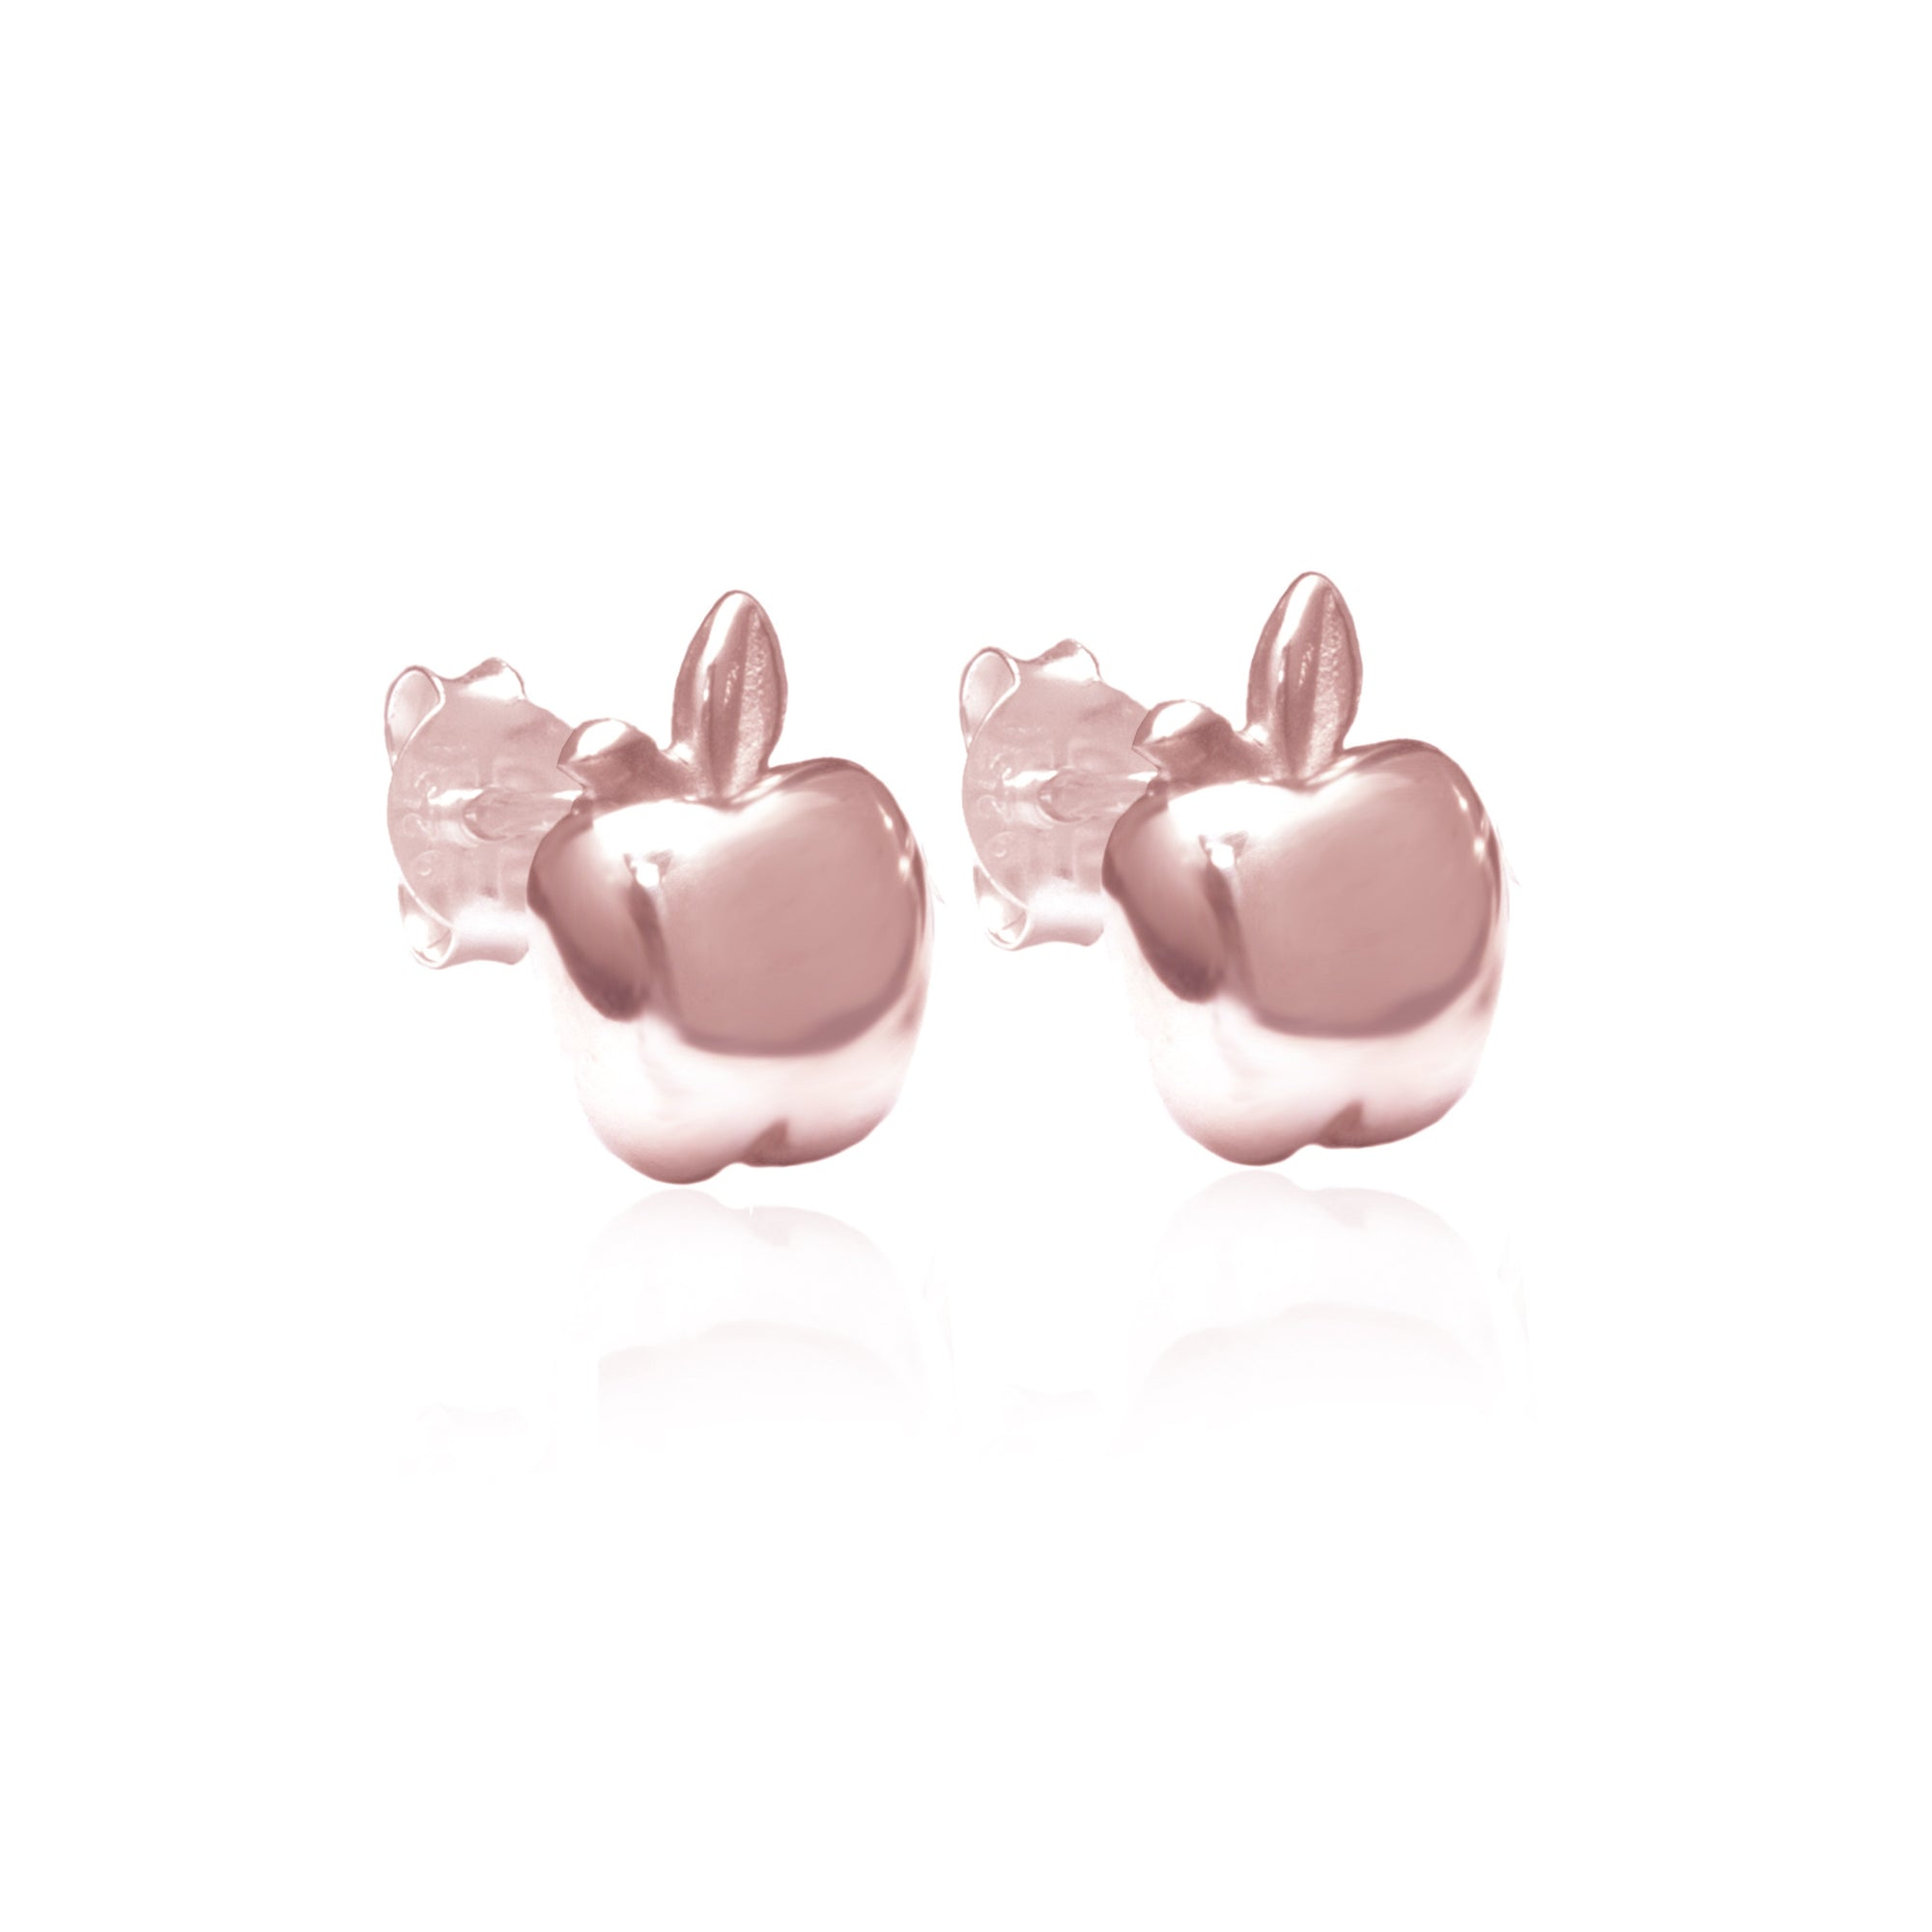 La Luna Rose Jewellery - Apple of My Eye Earrings - Rose Gold